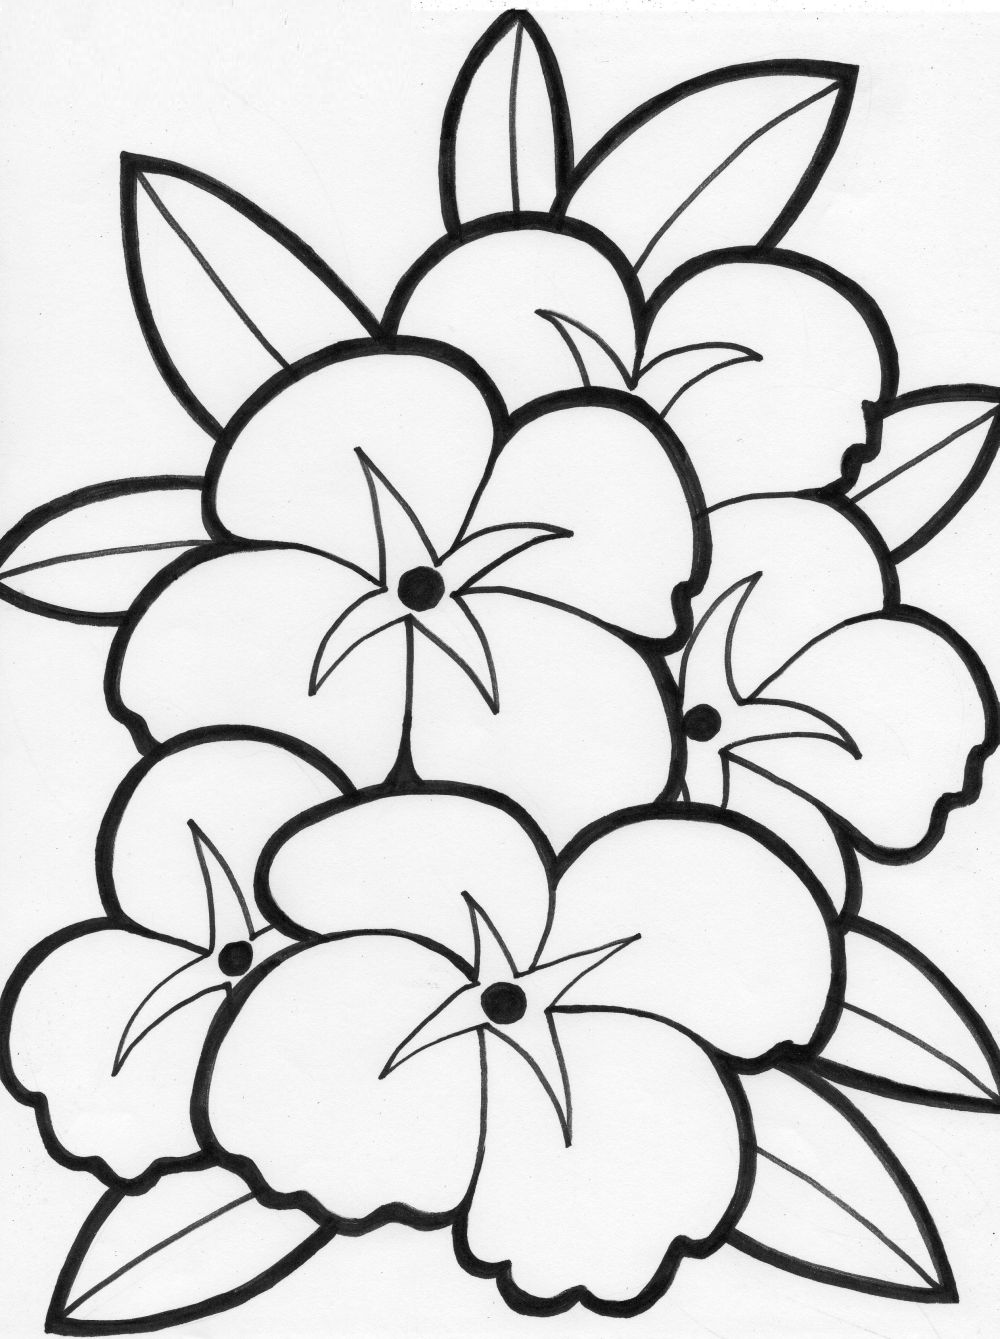 Free coloring pages com printable - Flower Page Printable Coloring Sheets Flowers Coloring Pages Free Printable Download Coloring Pages Hub